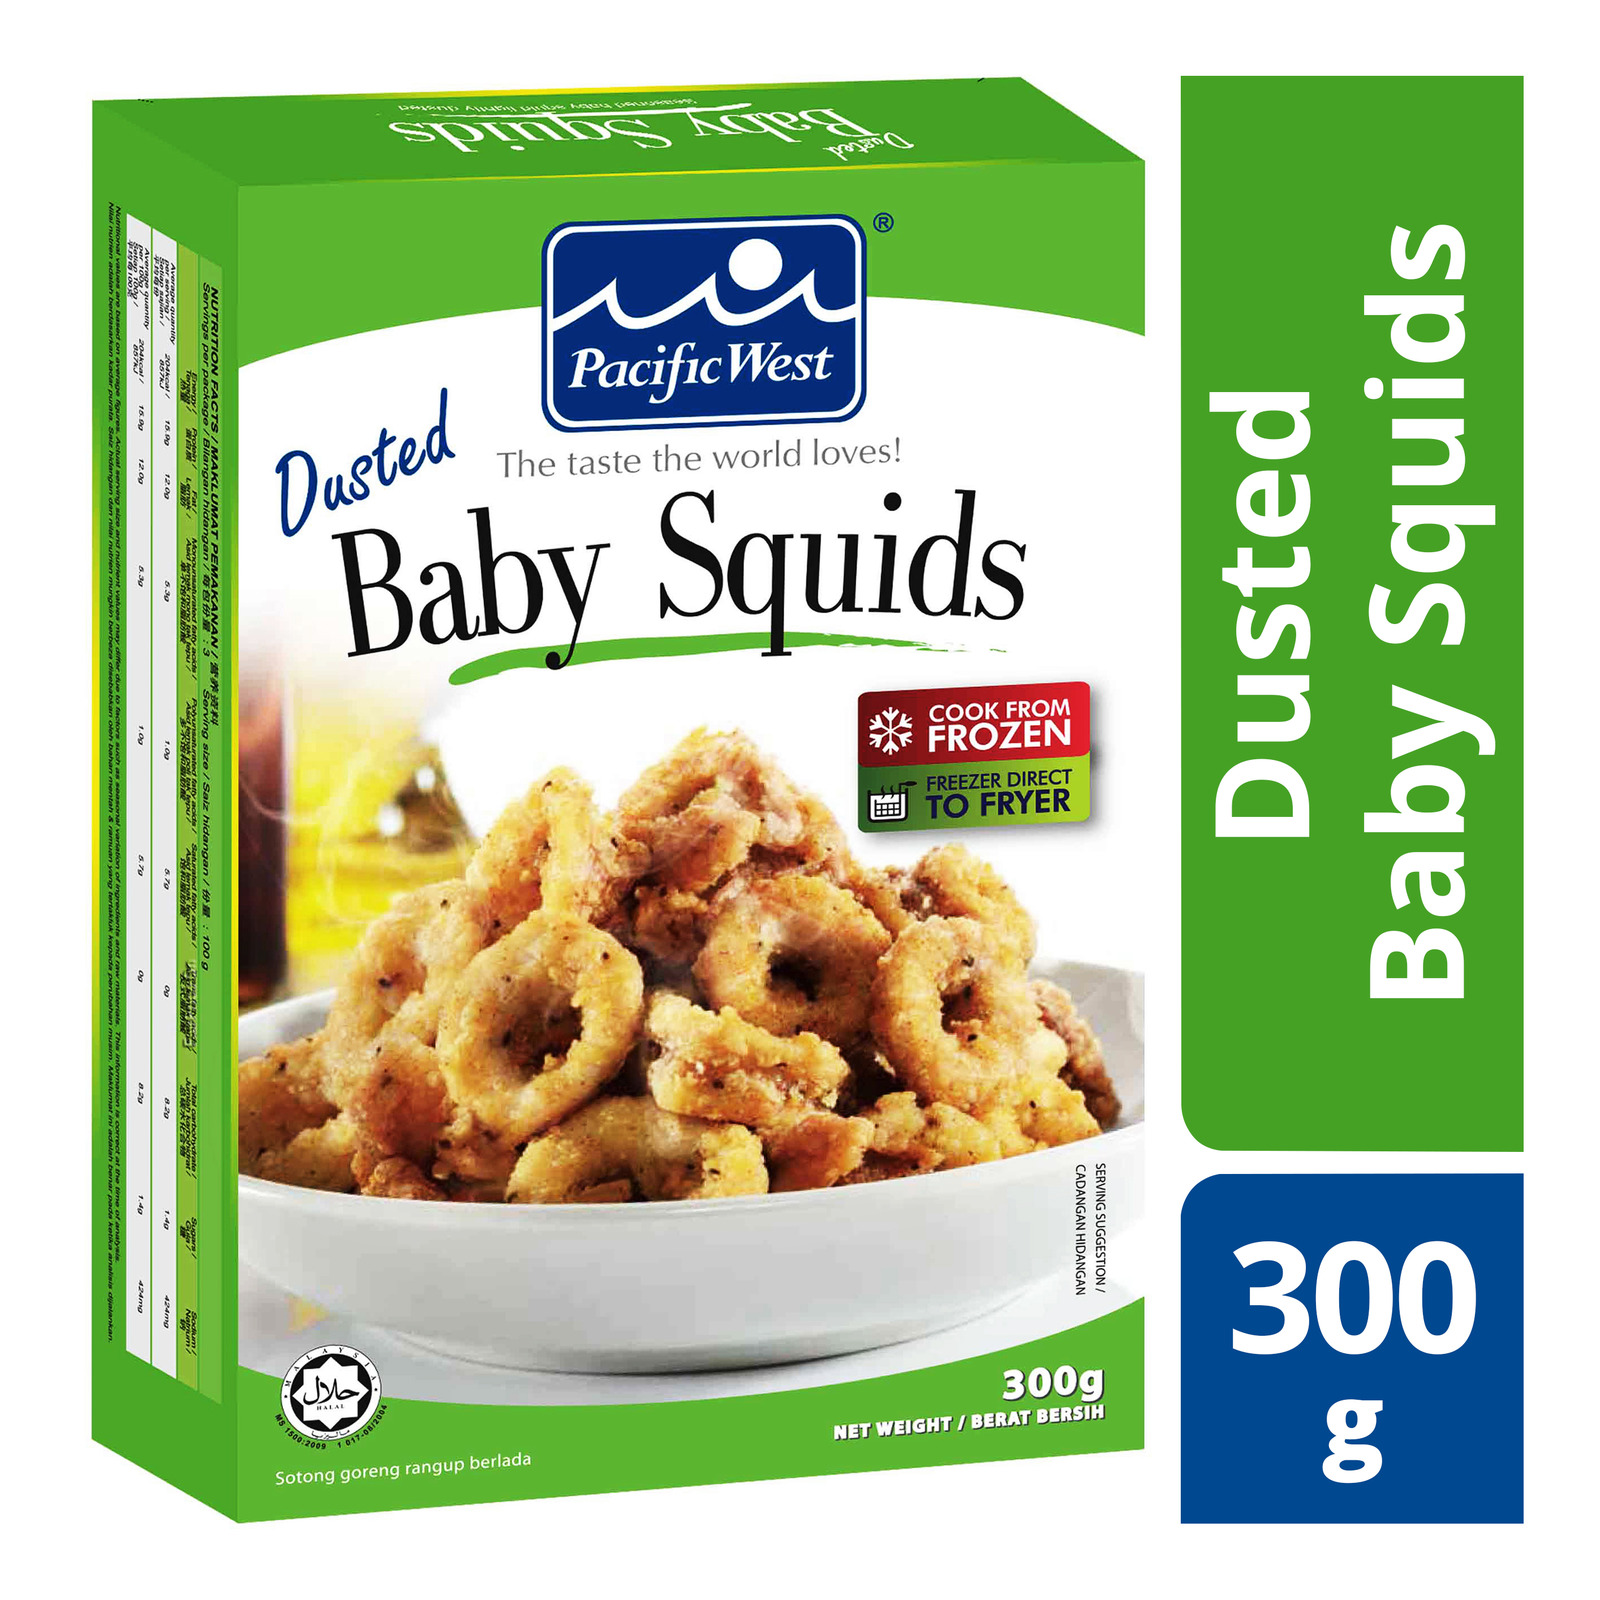 Pacific West Frozen Dusted Baby Squids